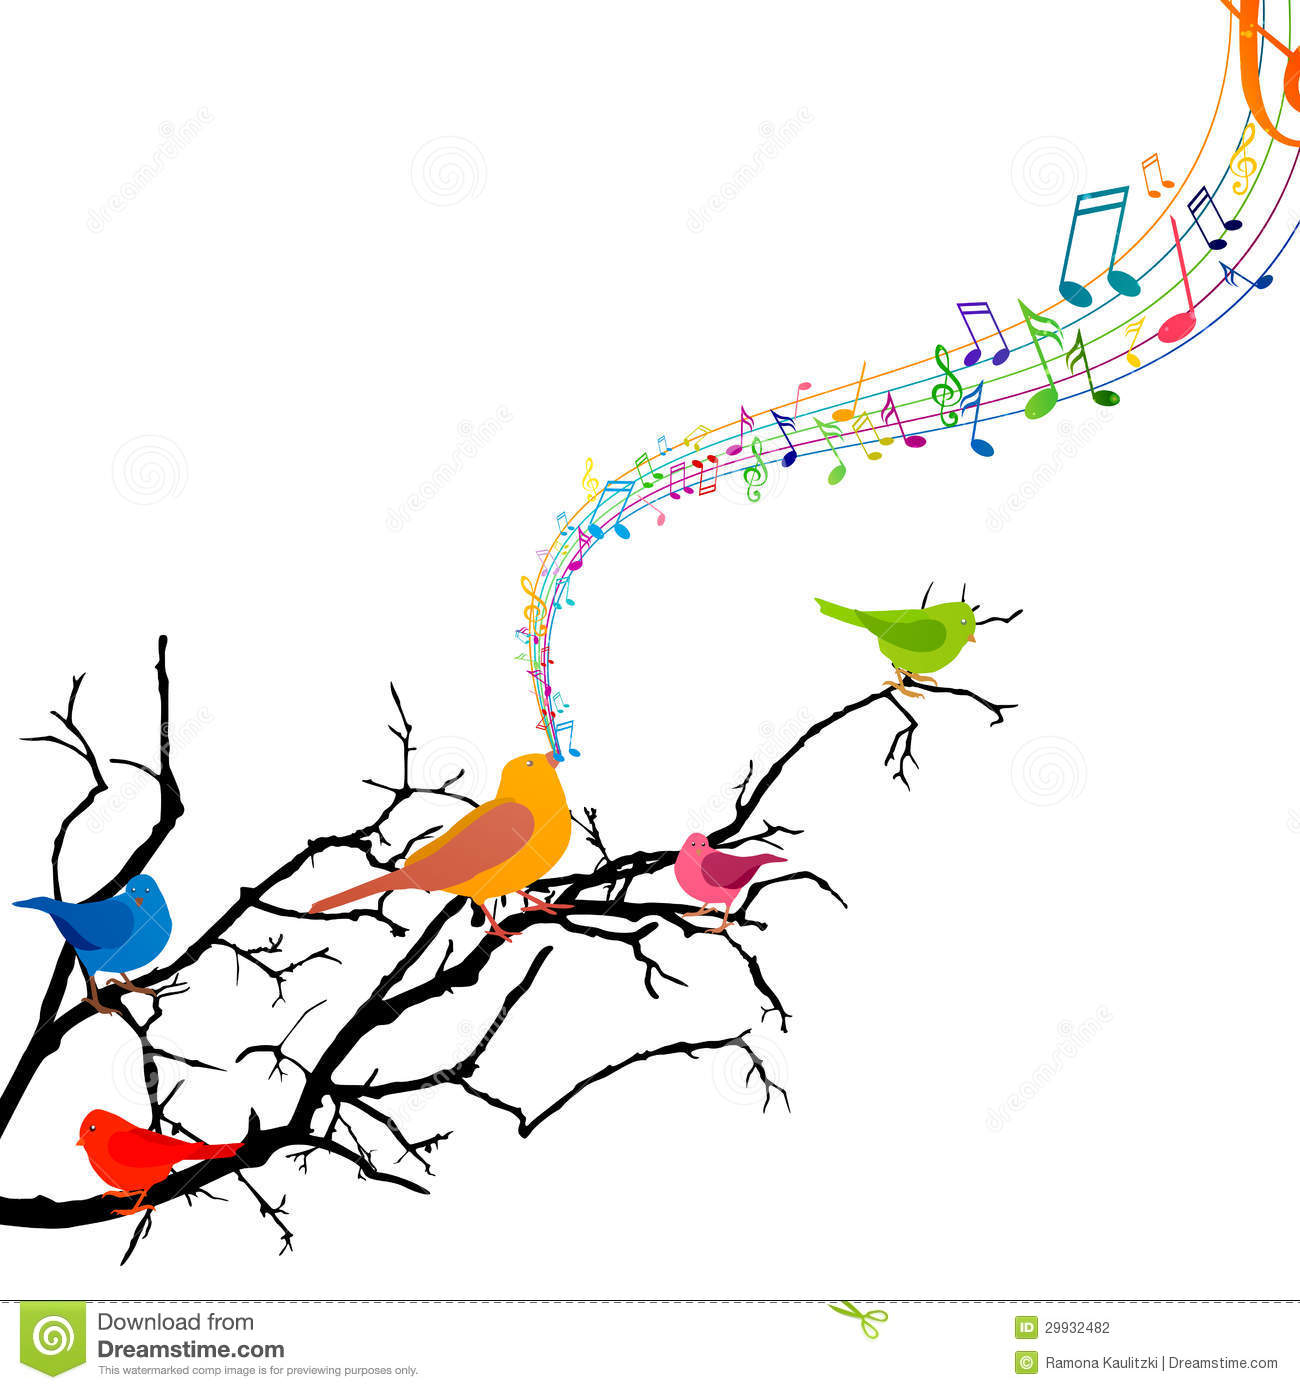 Music Notes clipart spring Cps China 4Uebua Terms Com